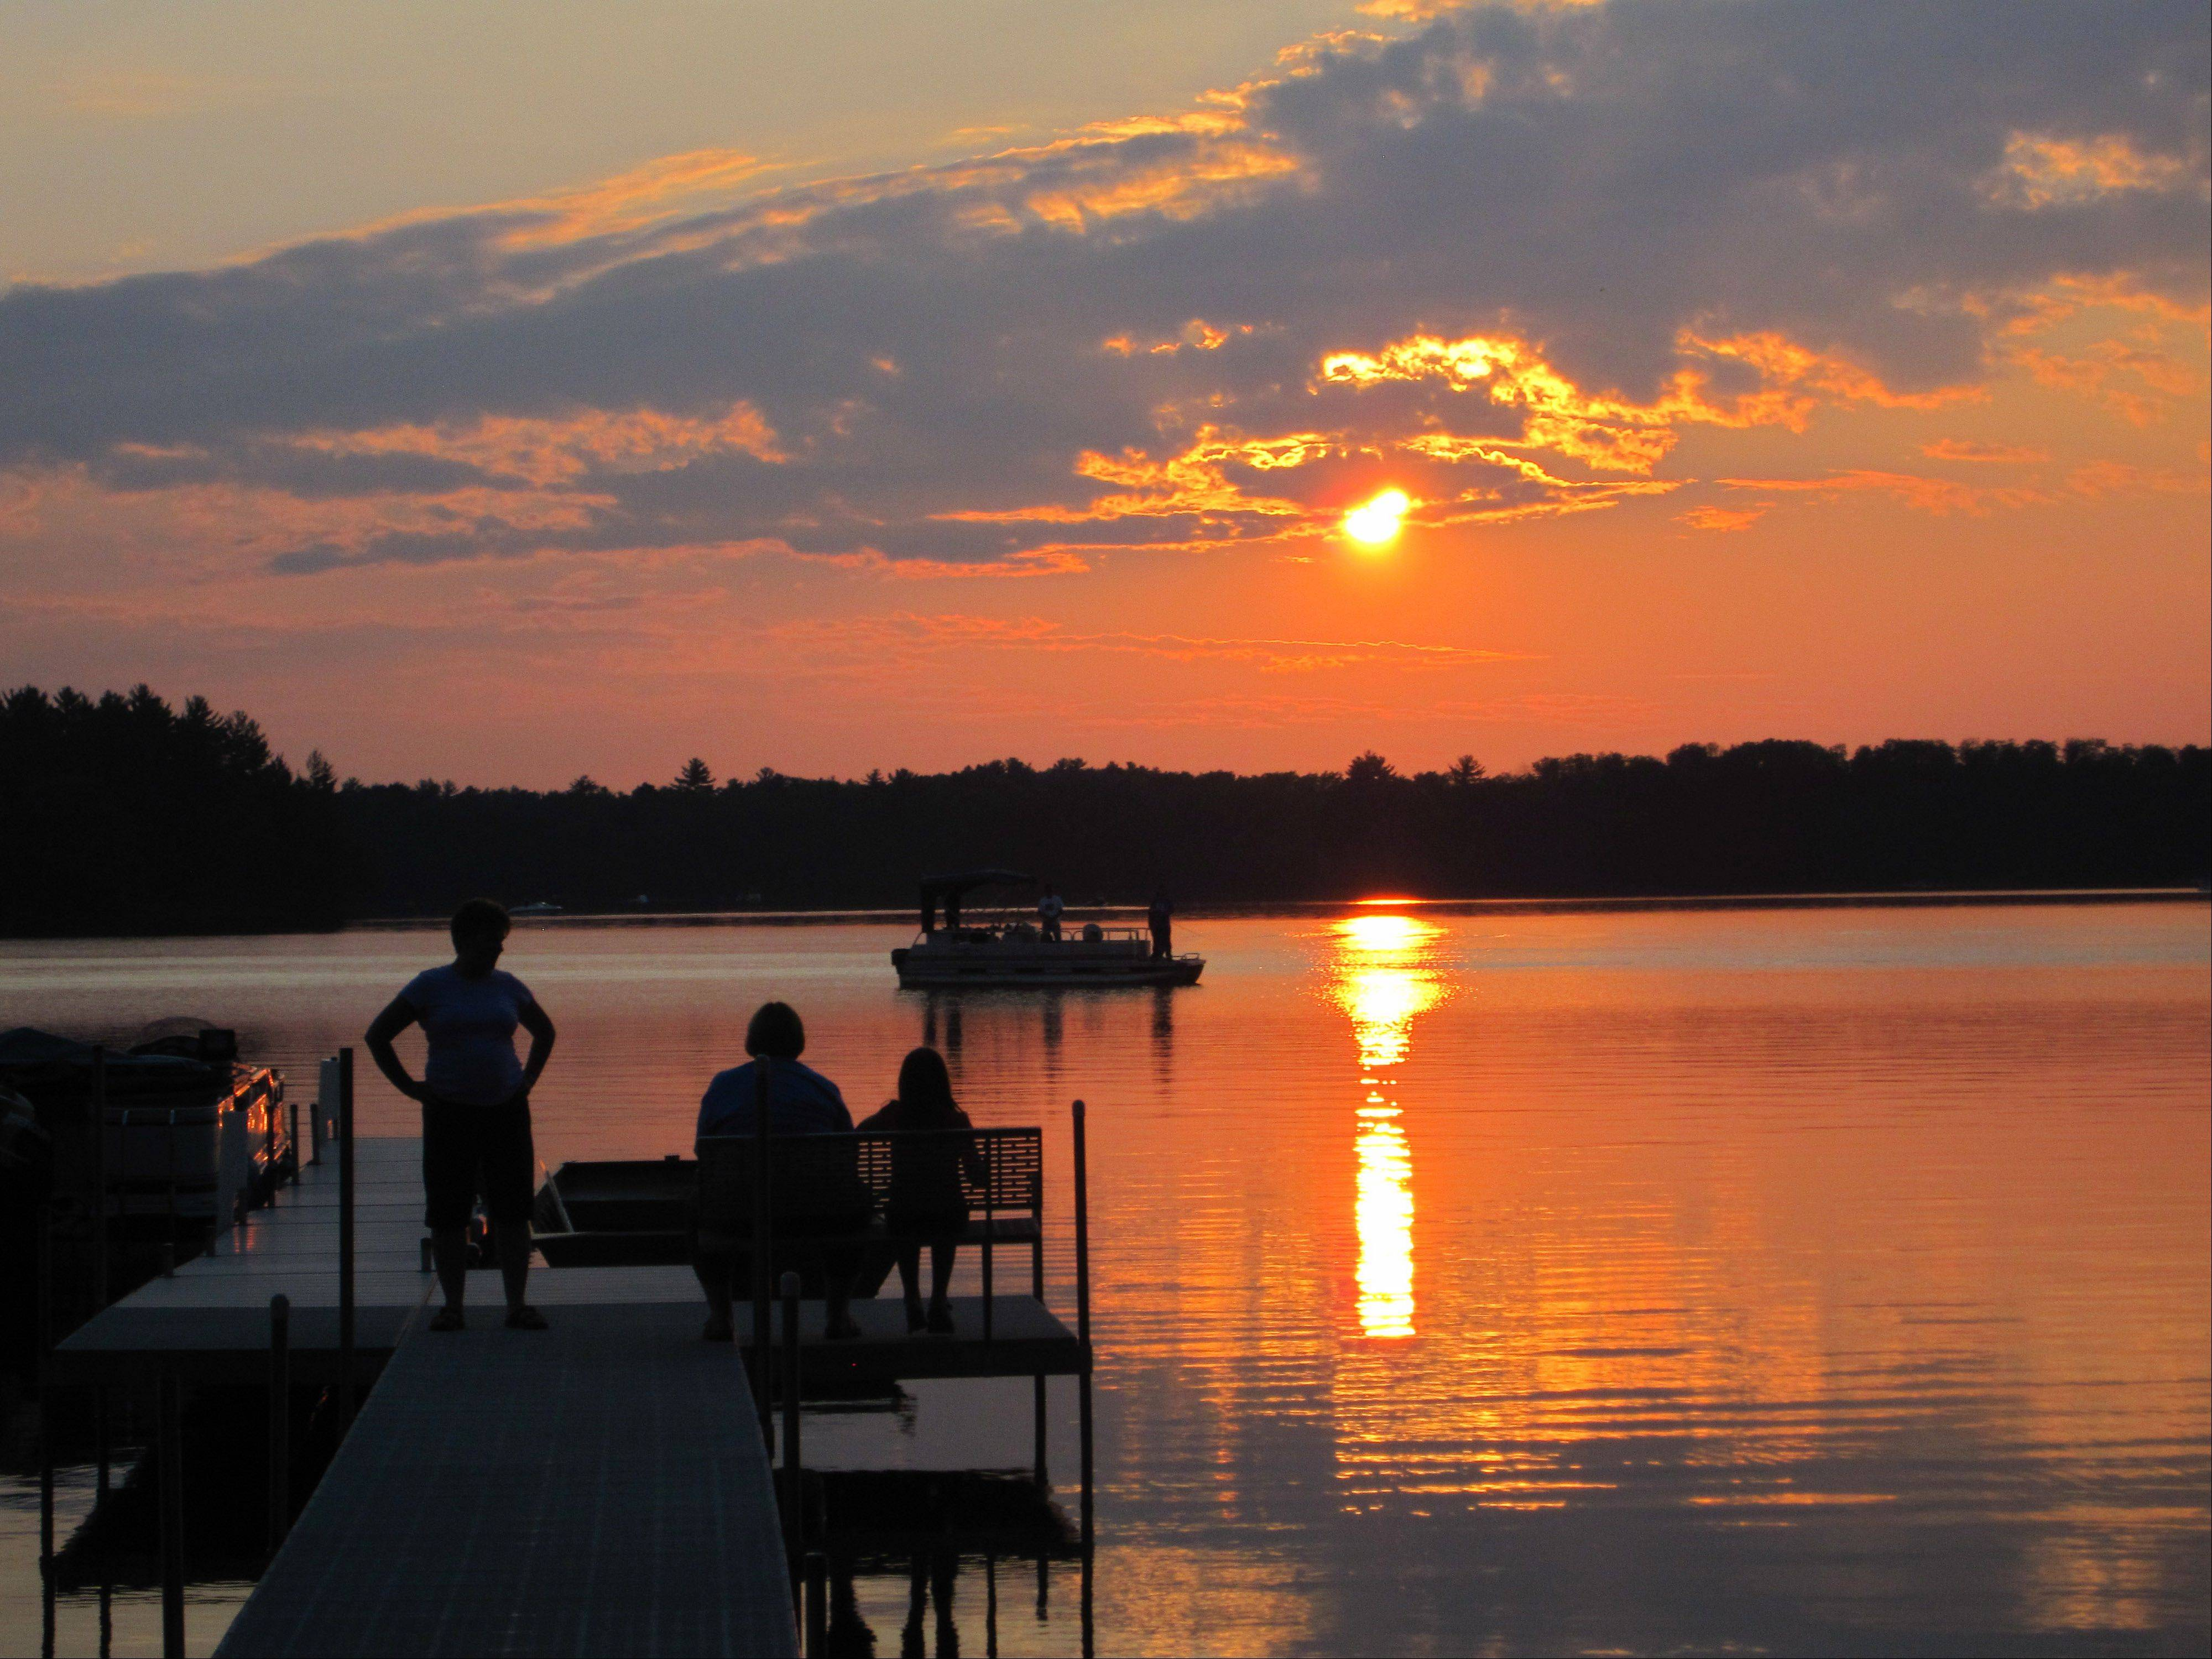 This photo of grandma, mother and granddaughter Thea on the dock watching the sunset was taken in the evening at Meta Lake, Eagle River, WI at the Timberlane Resort.